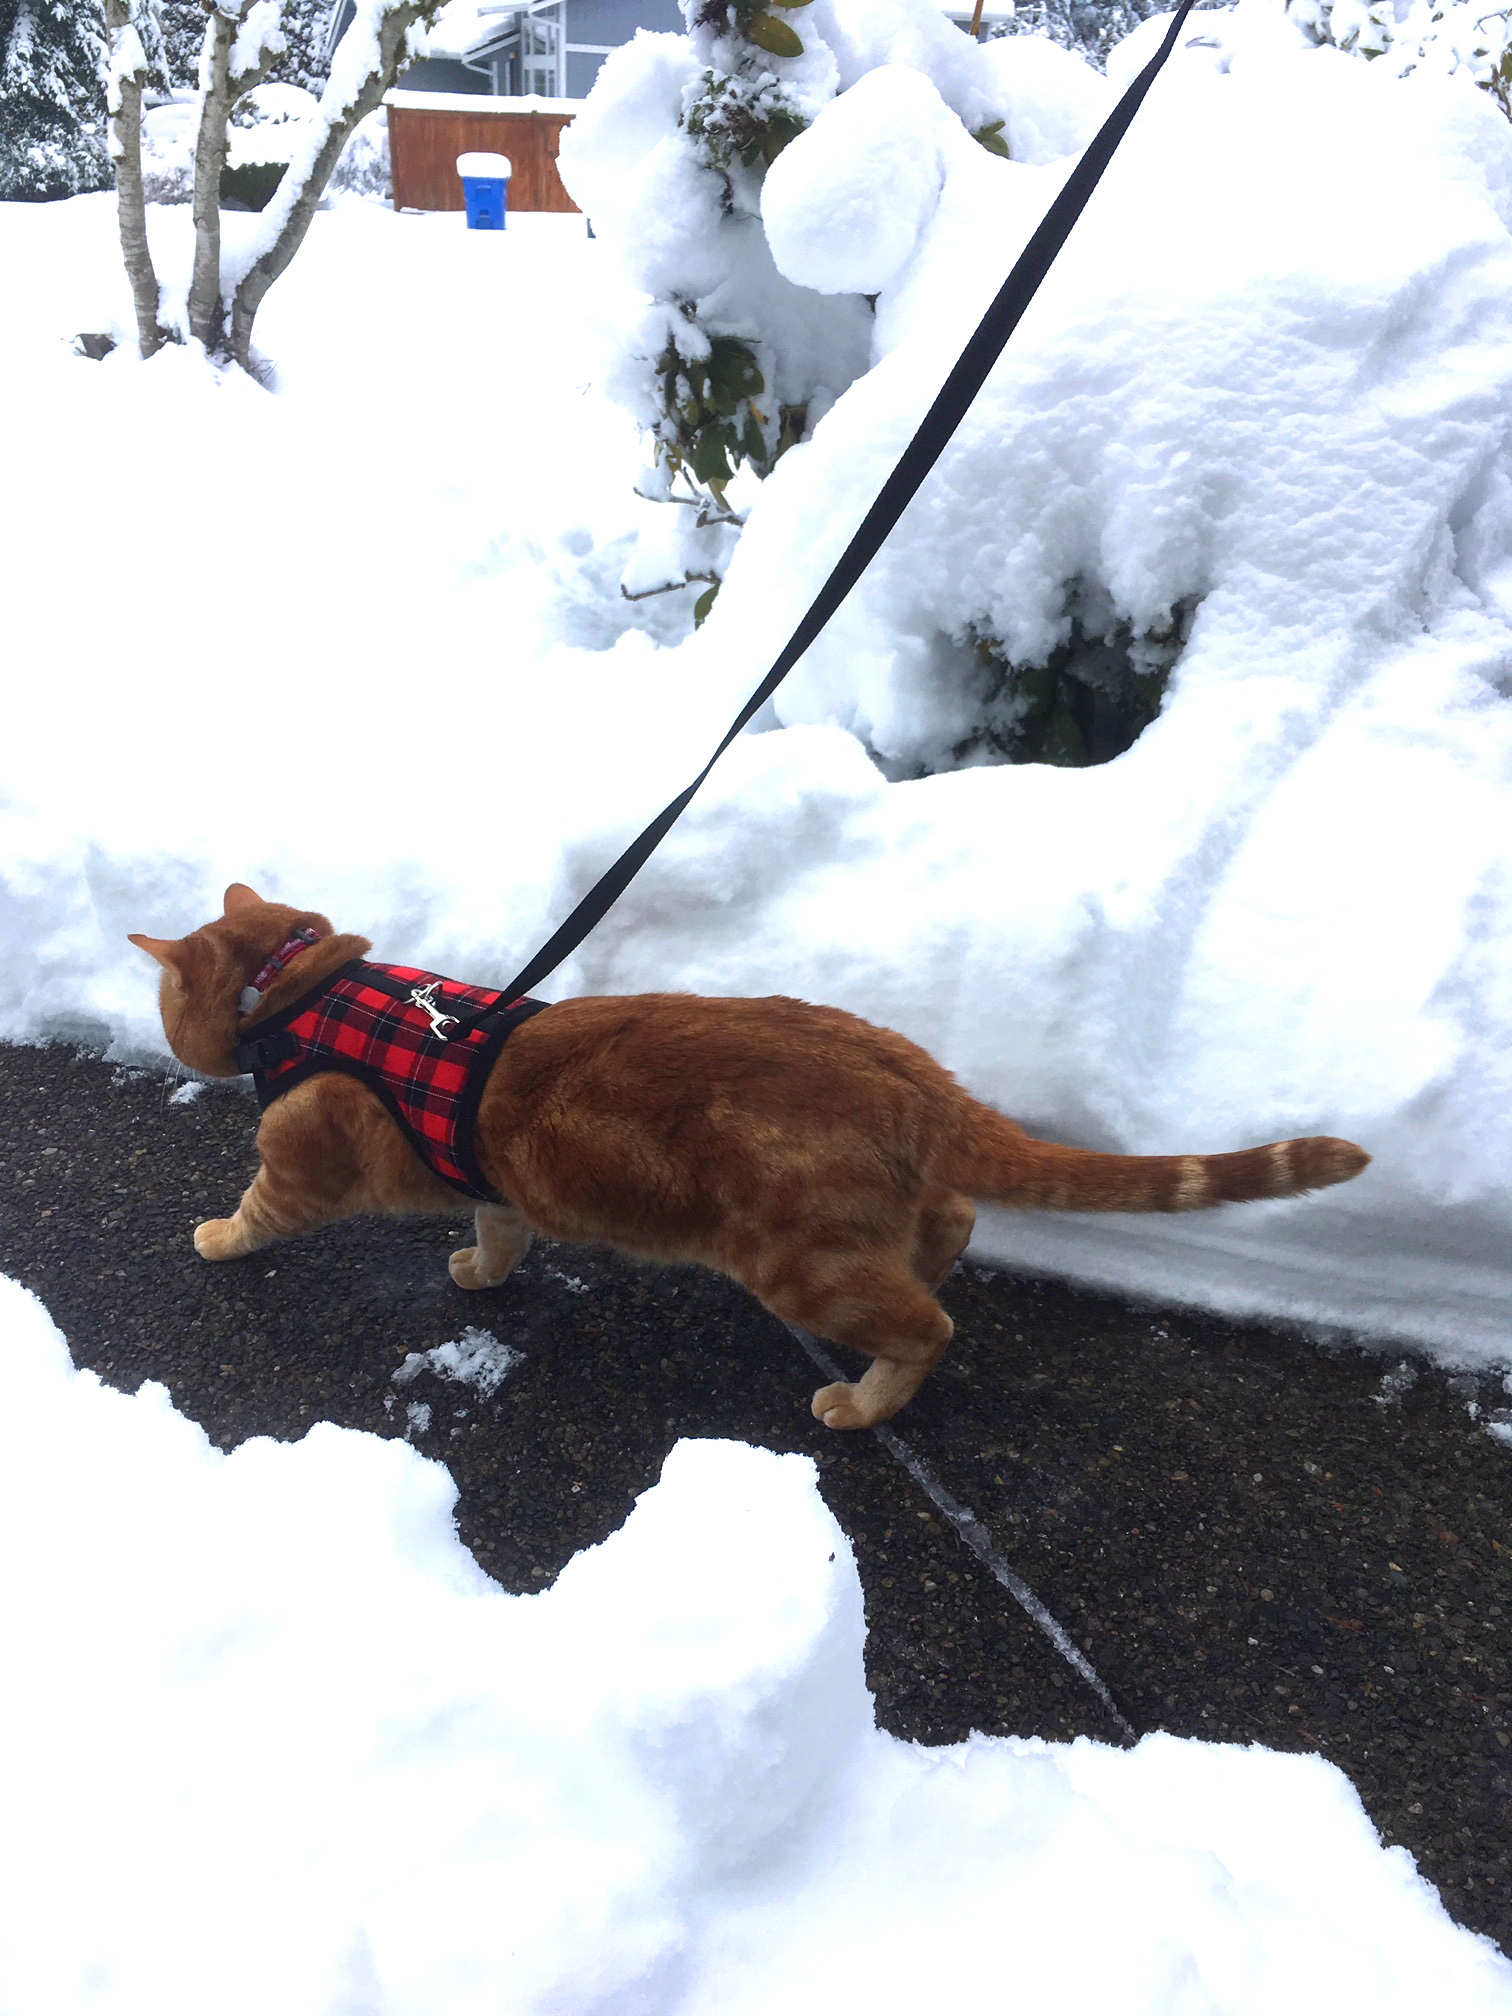 Scooby walking down path in snow